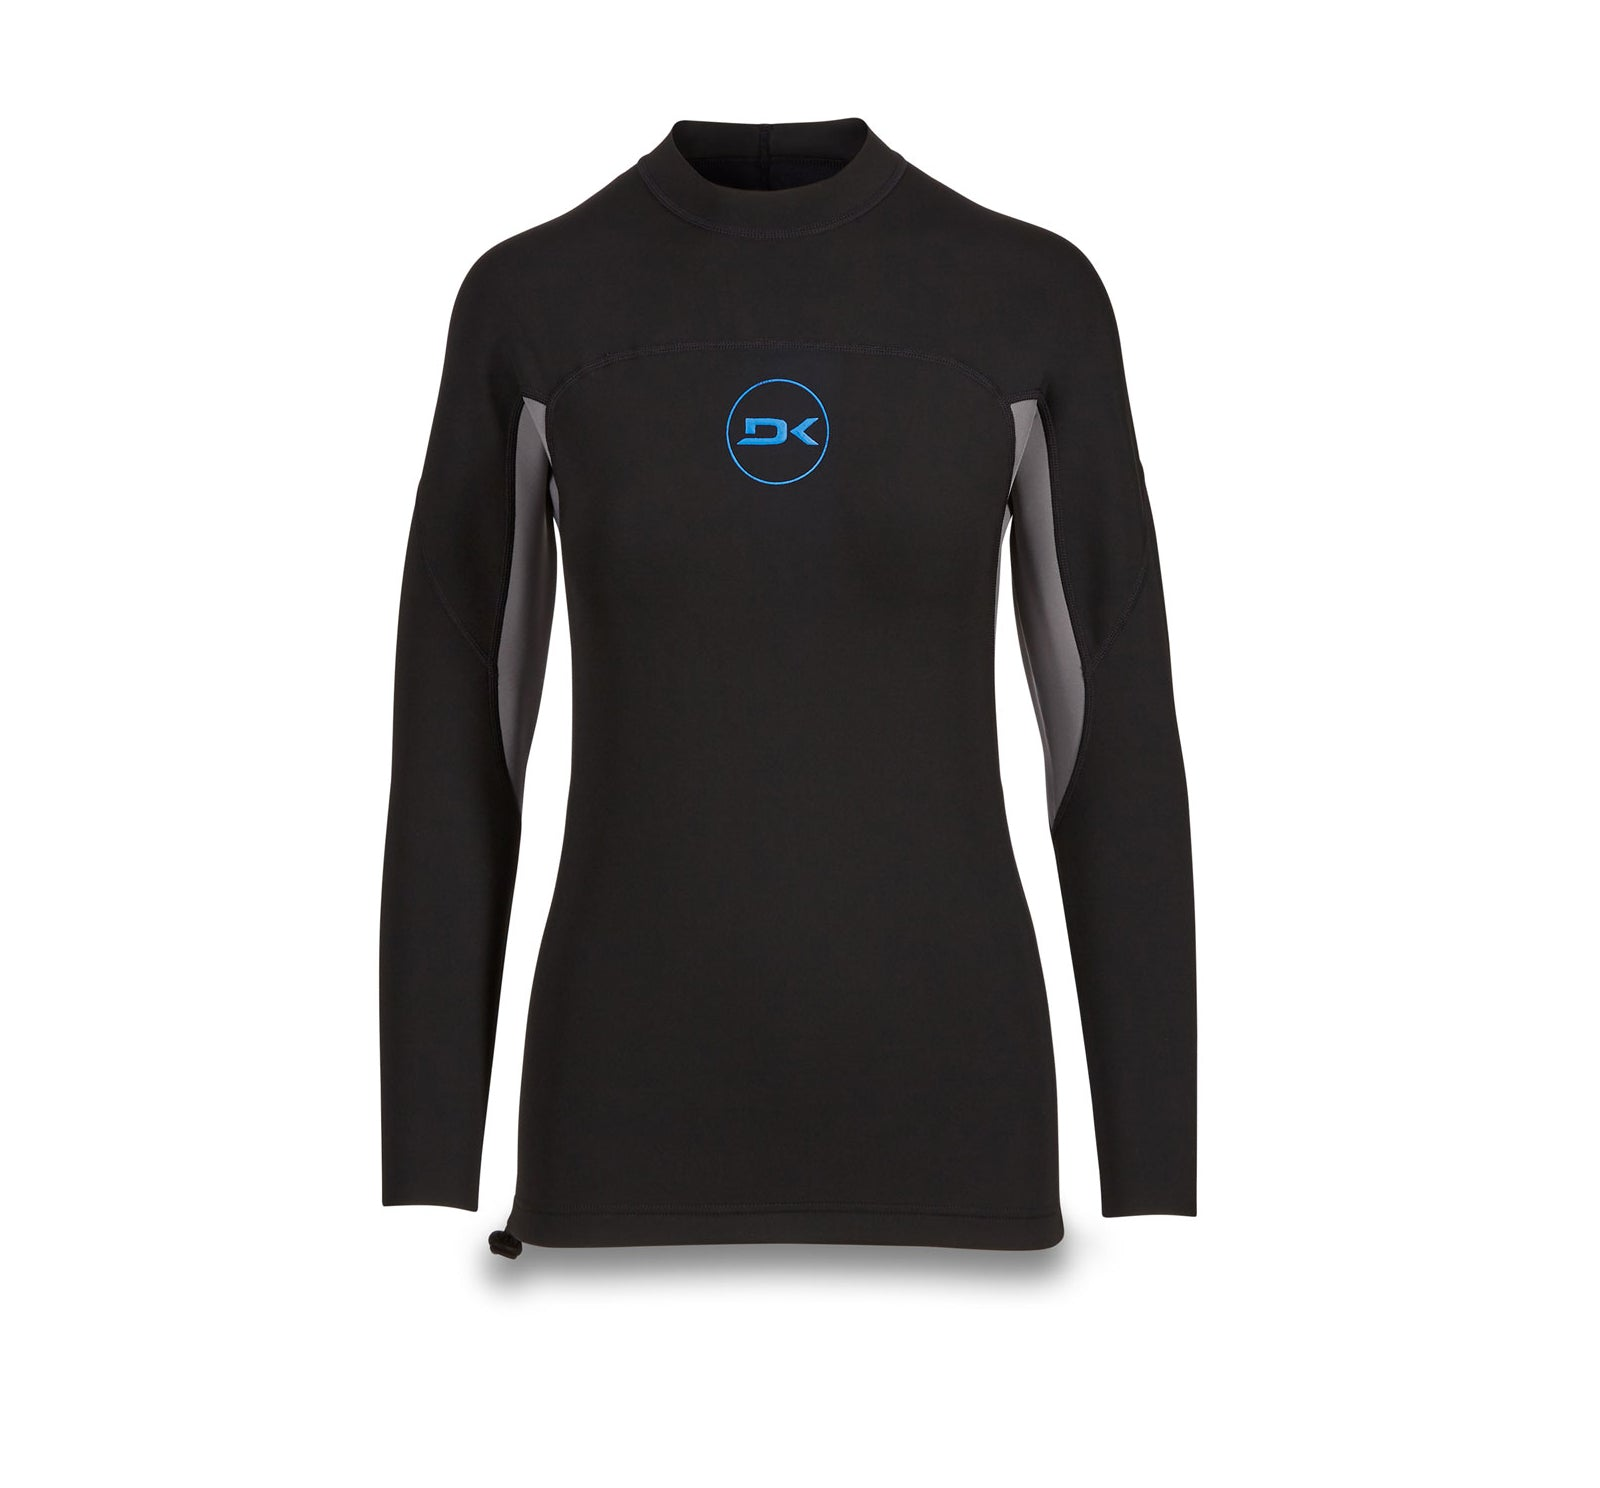 Dakine 1mm Men's Neo Jacket Flatlock Wetsuit Top - Black